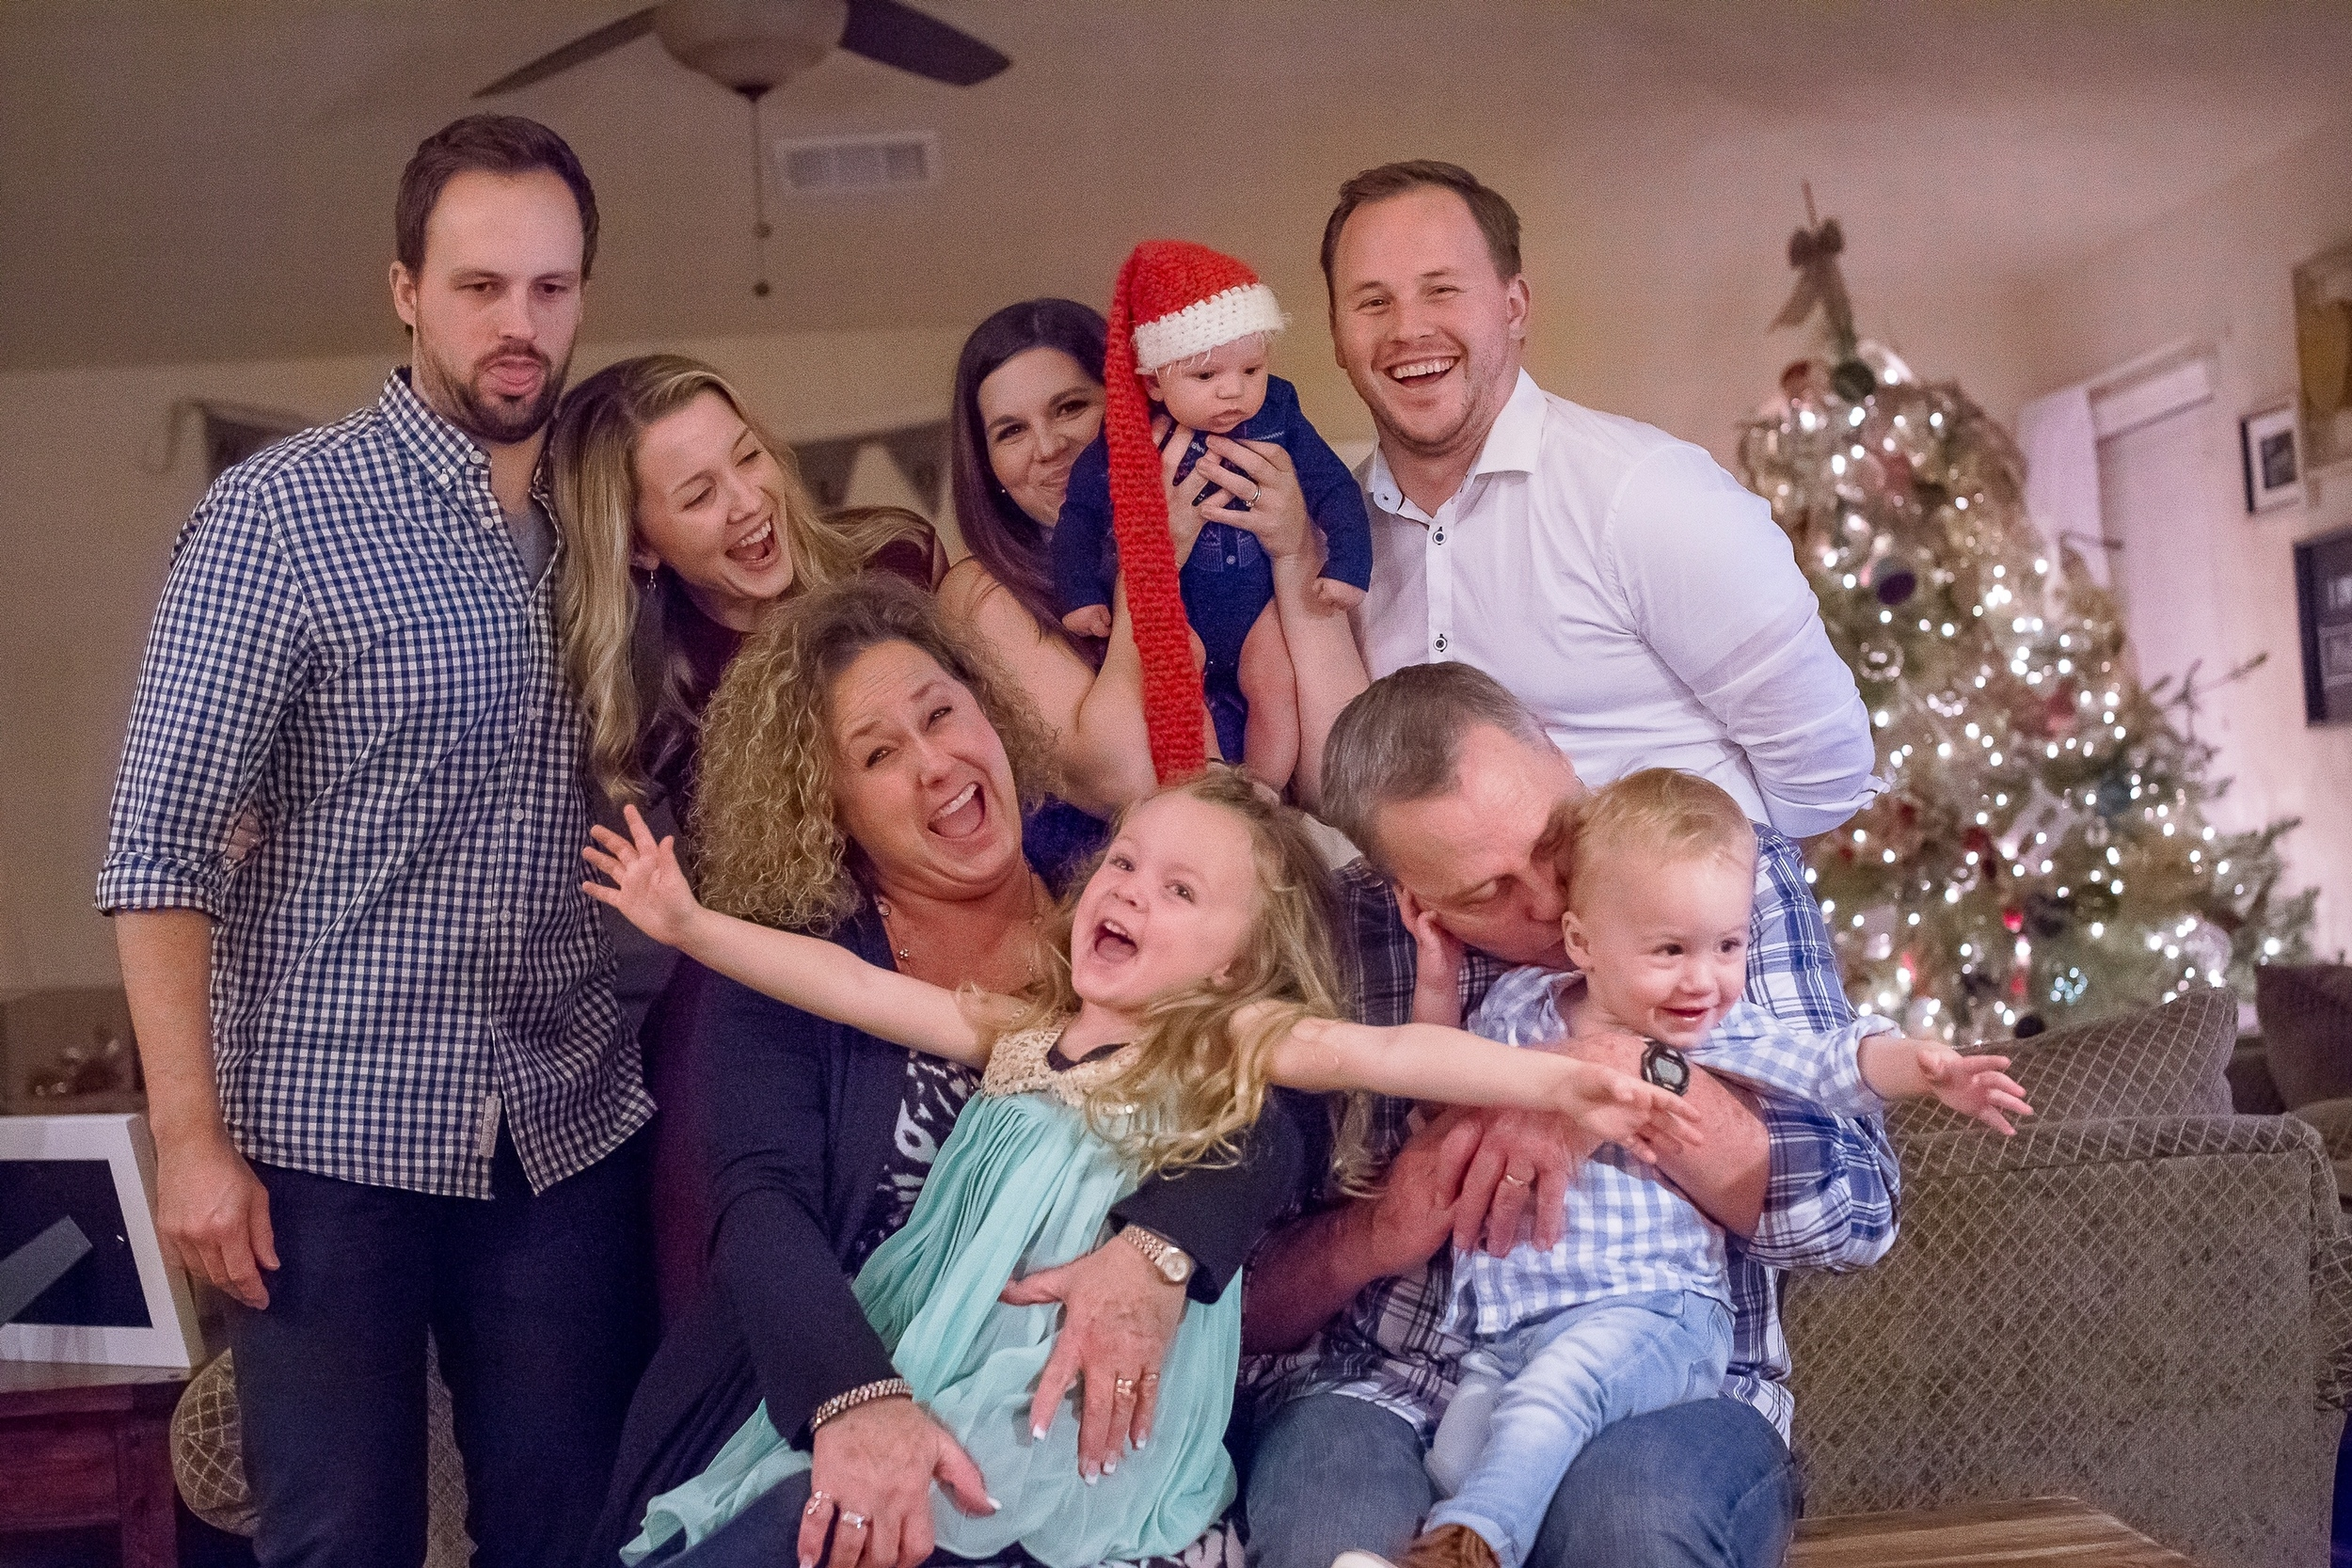 This pic was taken on Christmas Eve of Jess and I along with my brother Bryan, his wife Shanna and their 2 month old son Ethan. My parents were the lucky ones who got to hold our crazy kids.